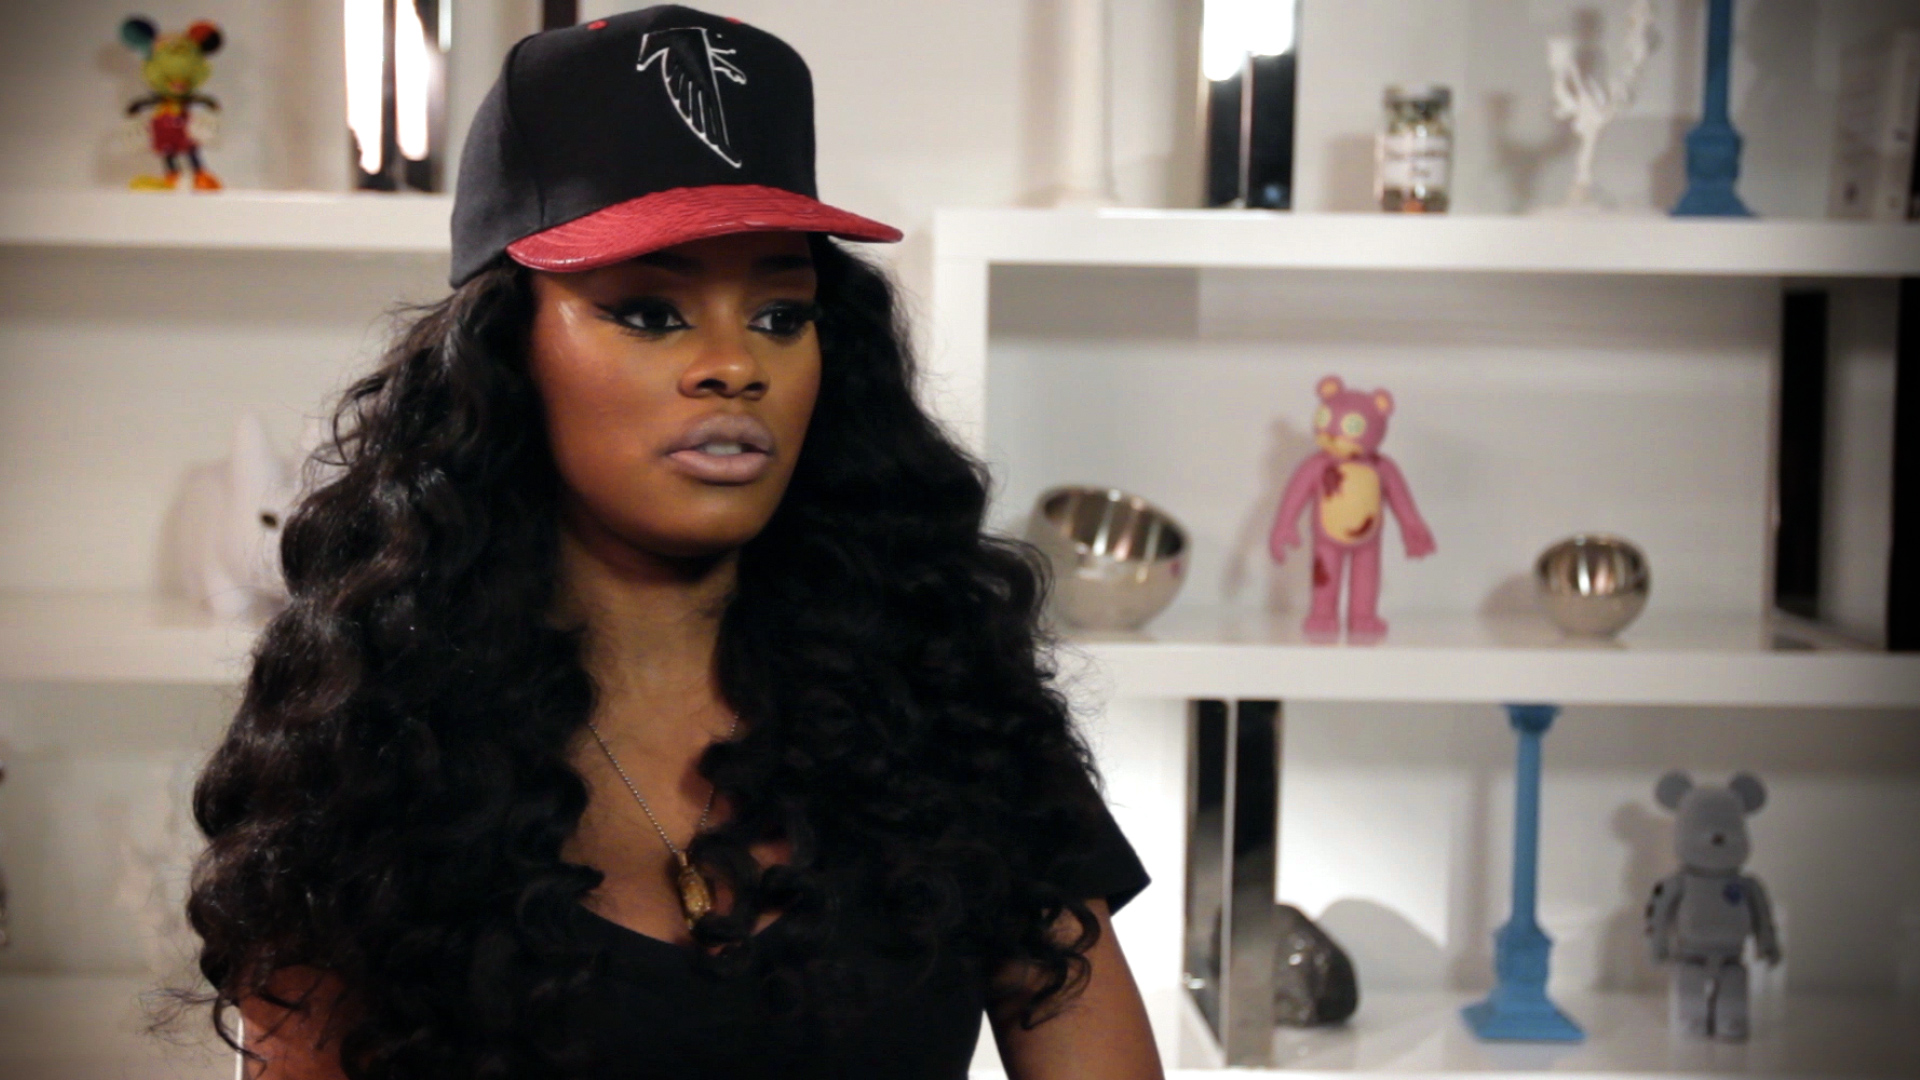 Teyana Taylor Wallpapers High Resolution And Quality Download